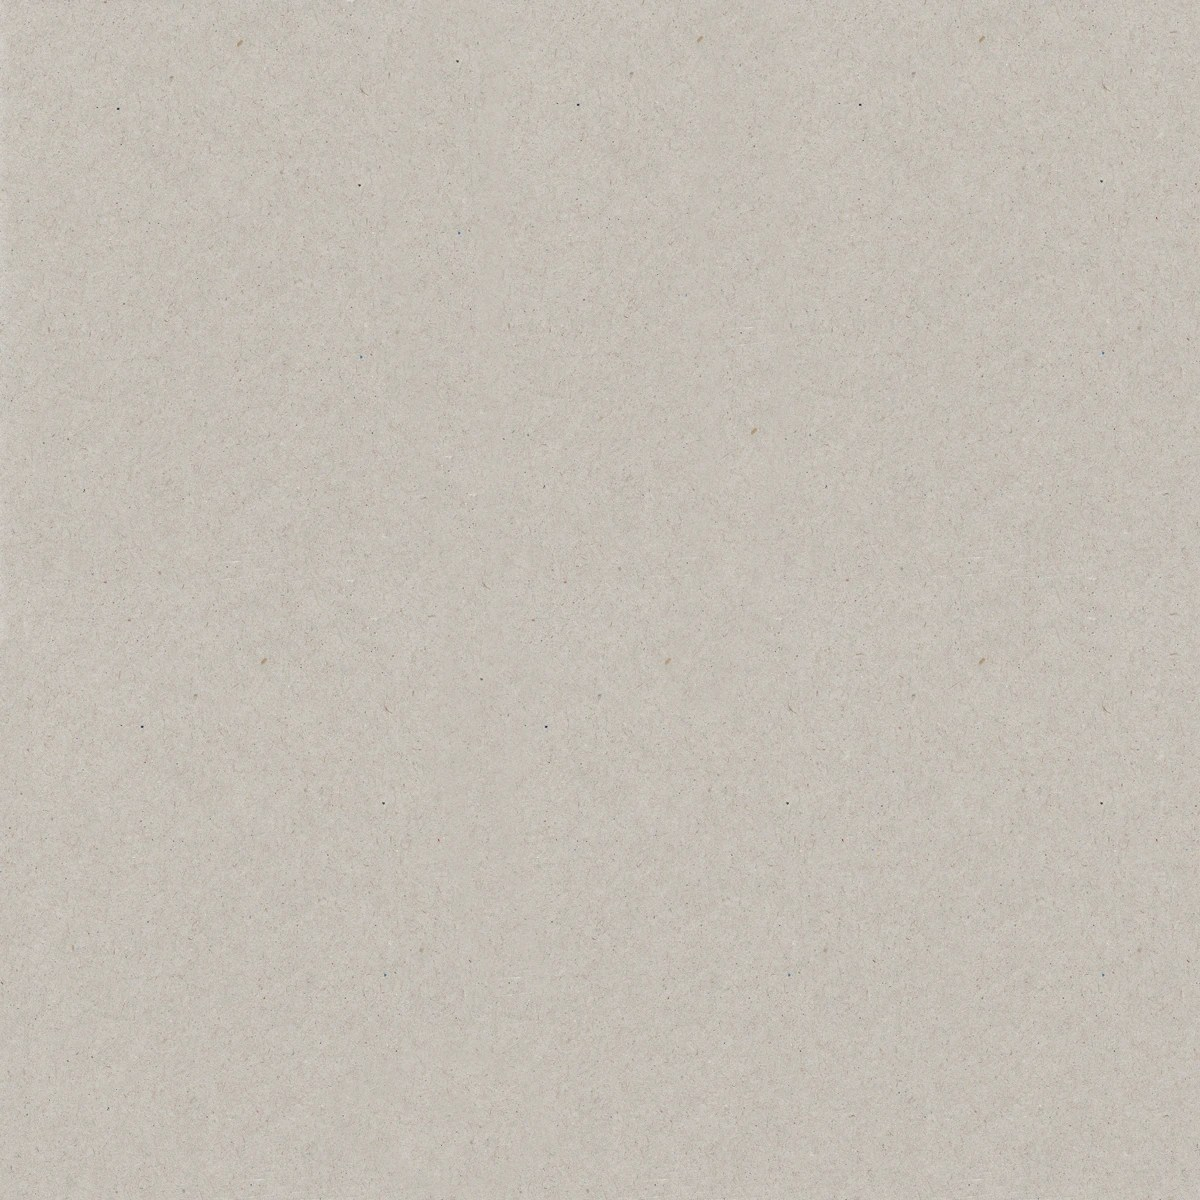 Bazzill Chipboard Sheets 12 X12 Natural Contains Pack Of 25